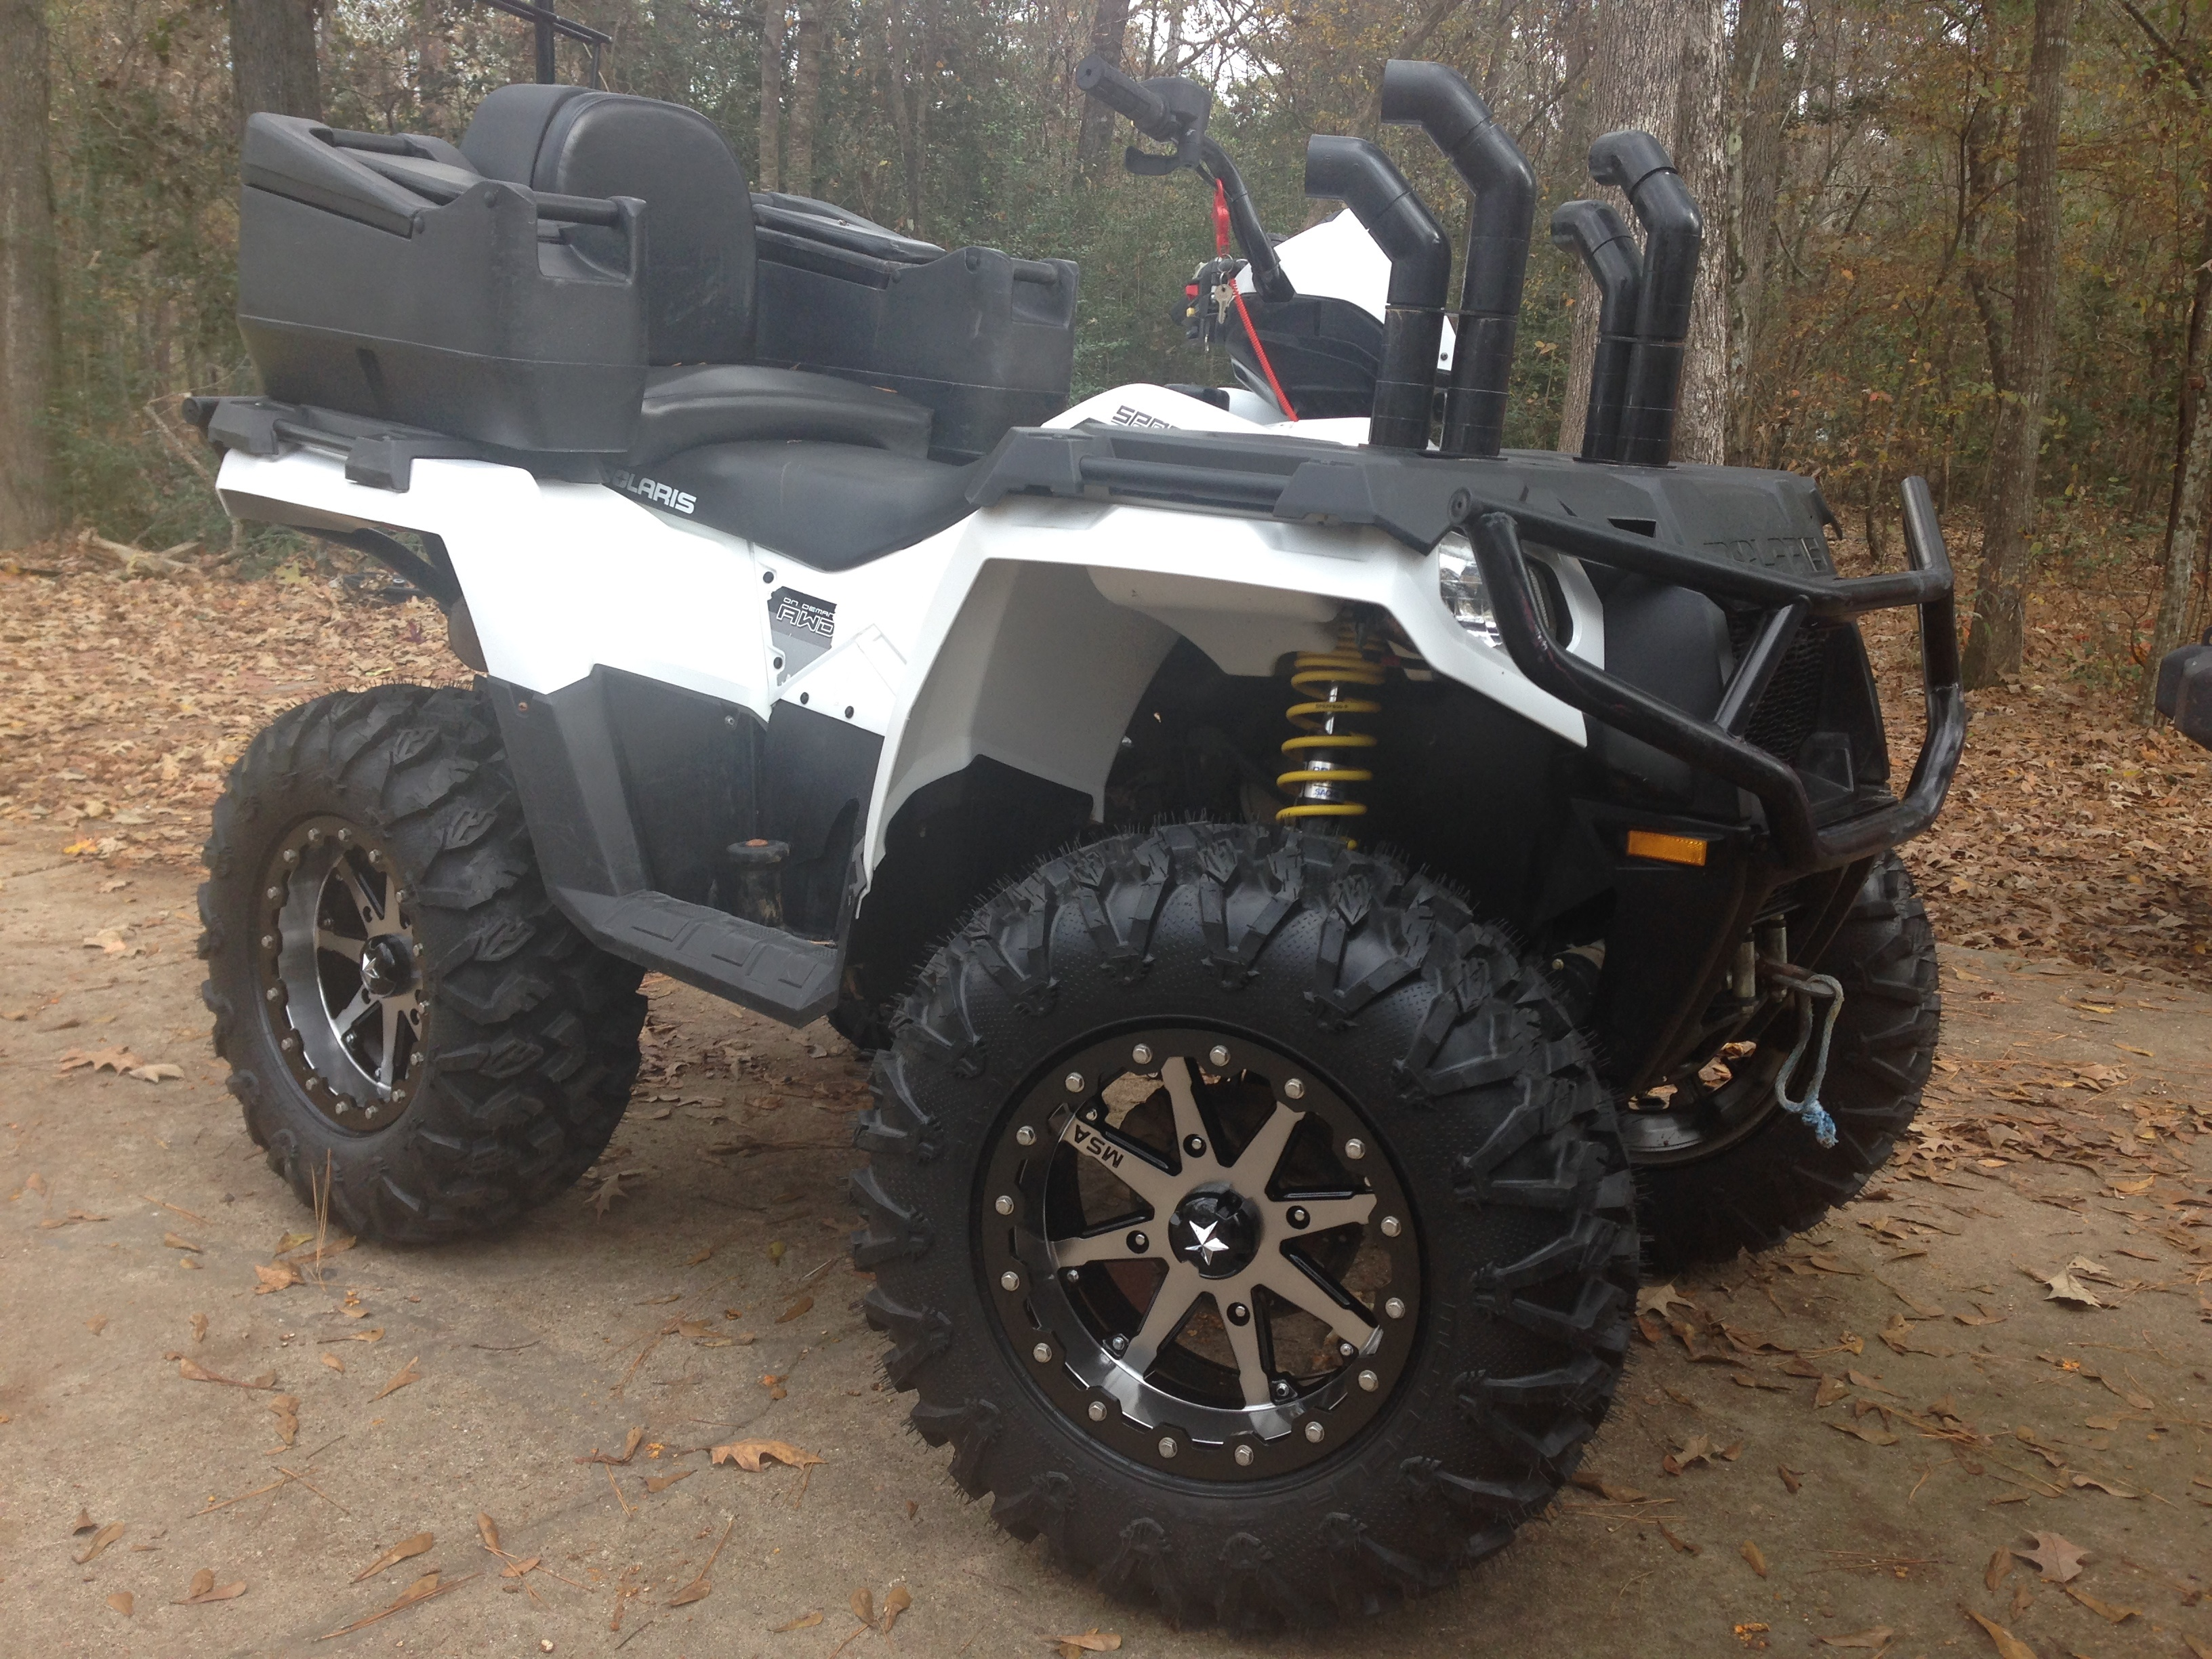 2014 Sportsman 570 Snorkel Kit Page 5 Polaris ATV Forum